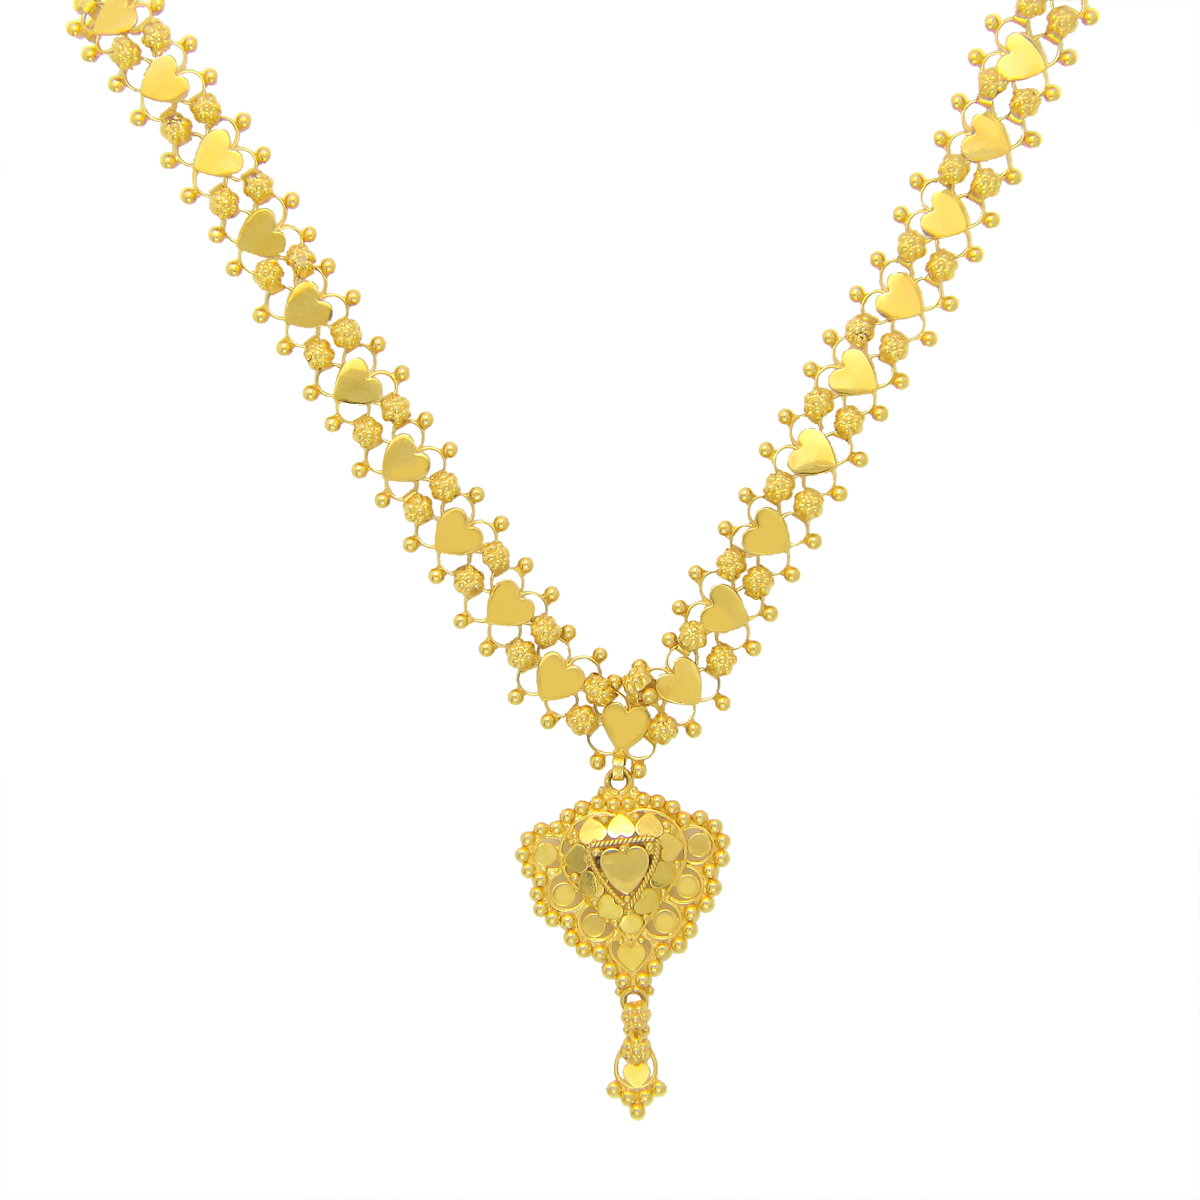 Popley 22Kt Gold Bandhan Necklace - A45